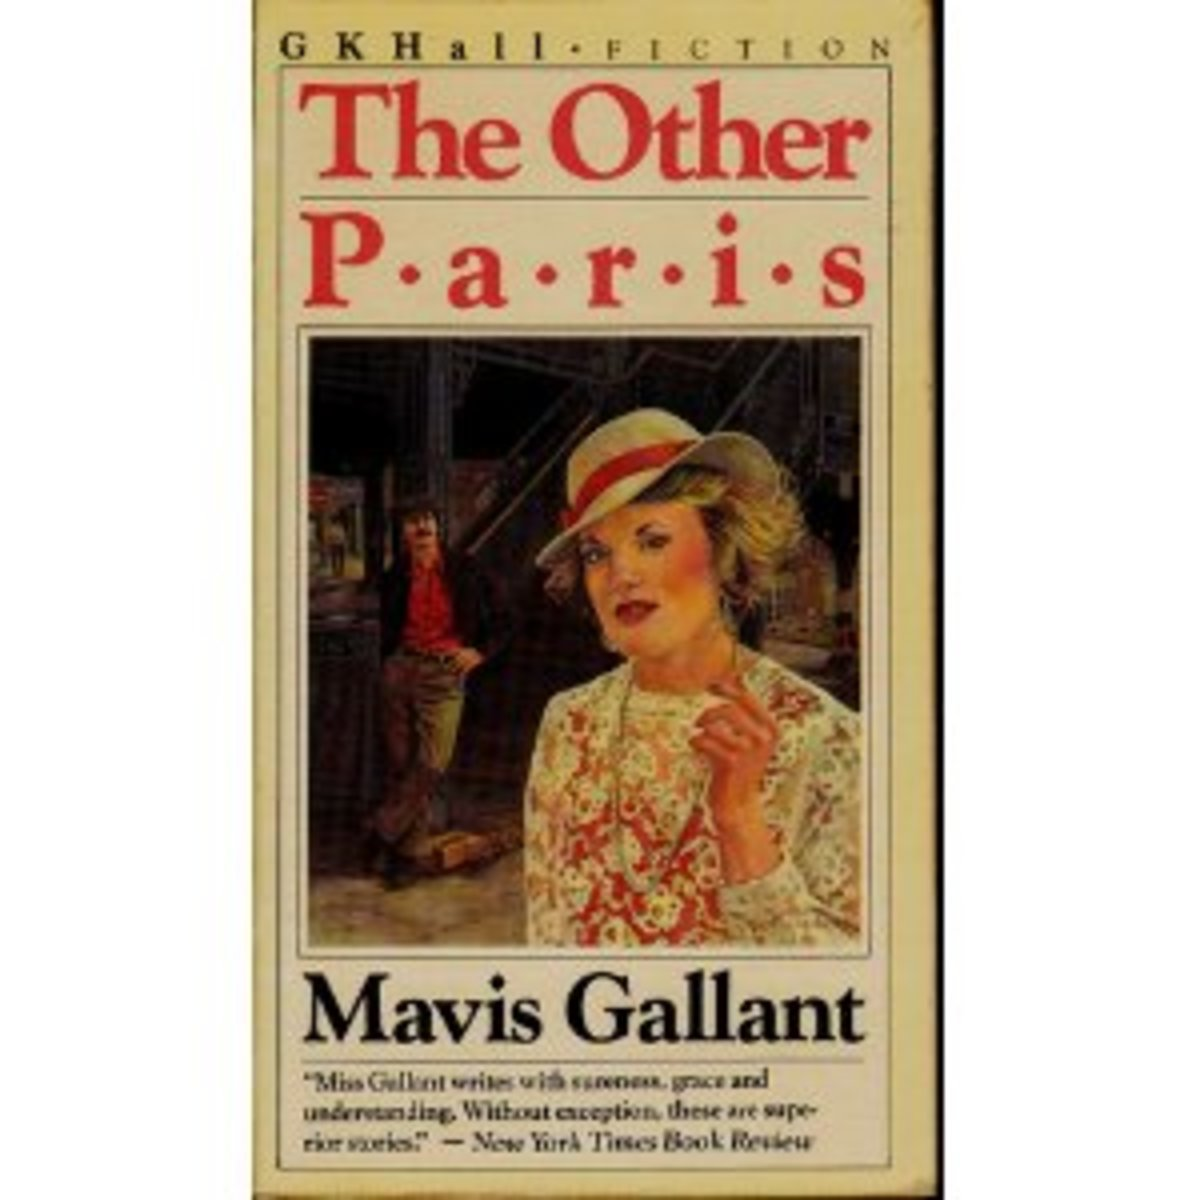 """an analysis of marriages in the other paris a short story by mavis gallant The other paris - mavis gallant prose analysis there are many areas of  in  mavis gallant's """"the other paris,"""" a comment on society's expectations  carol  has her """"helpful college lectures on marriage"""" to learn the """"true basis for  short  url."""